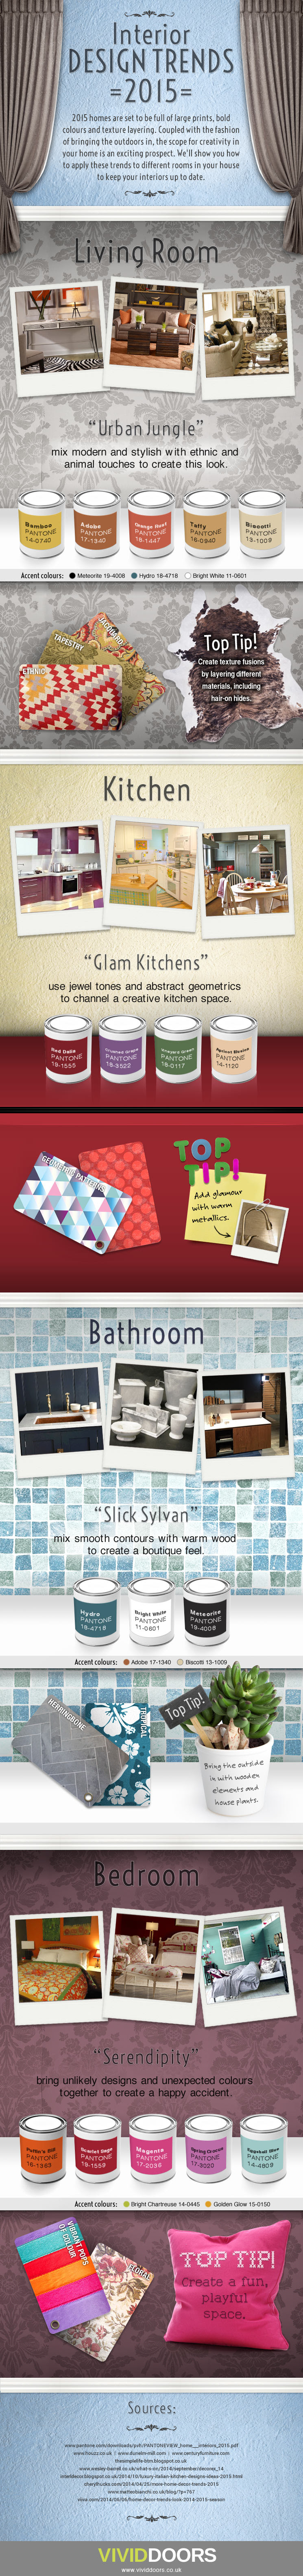 Infographic: Interior Design Trends for 2015